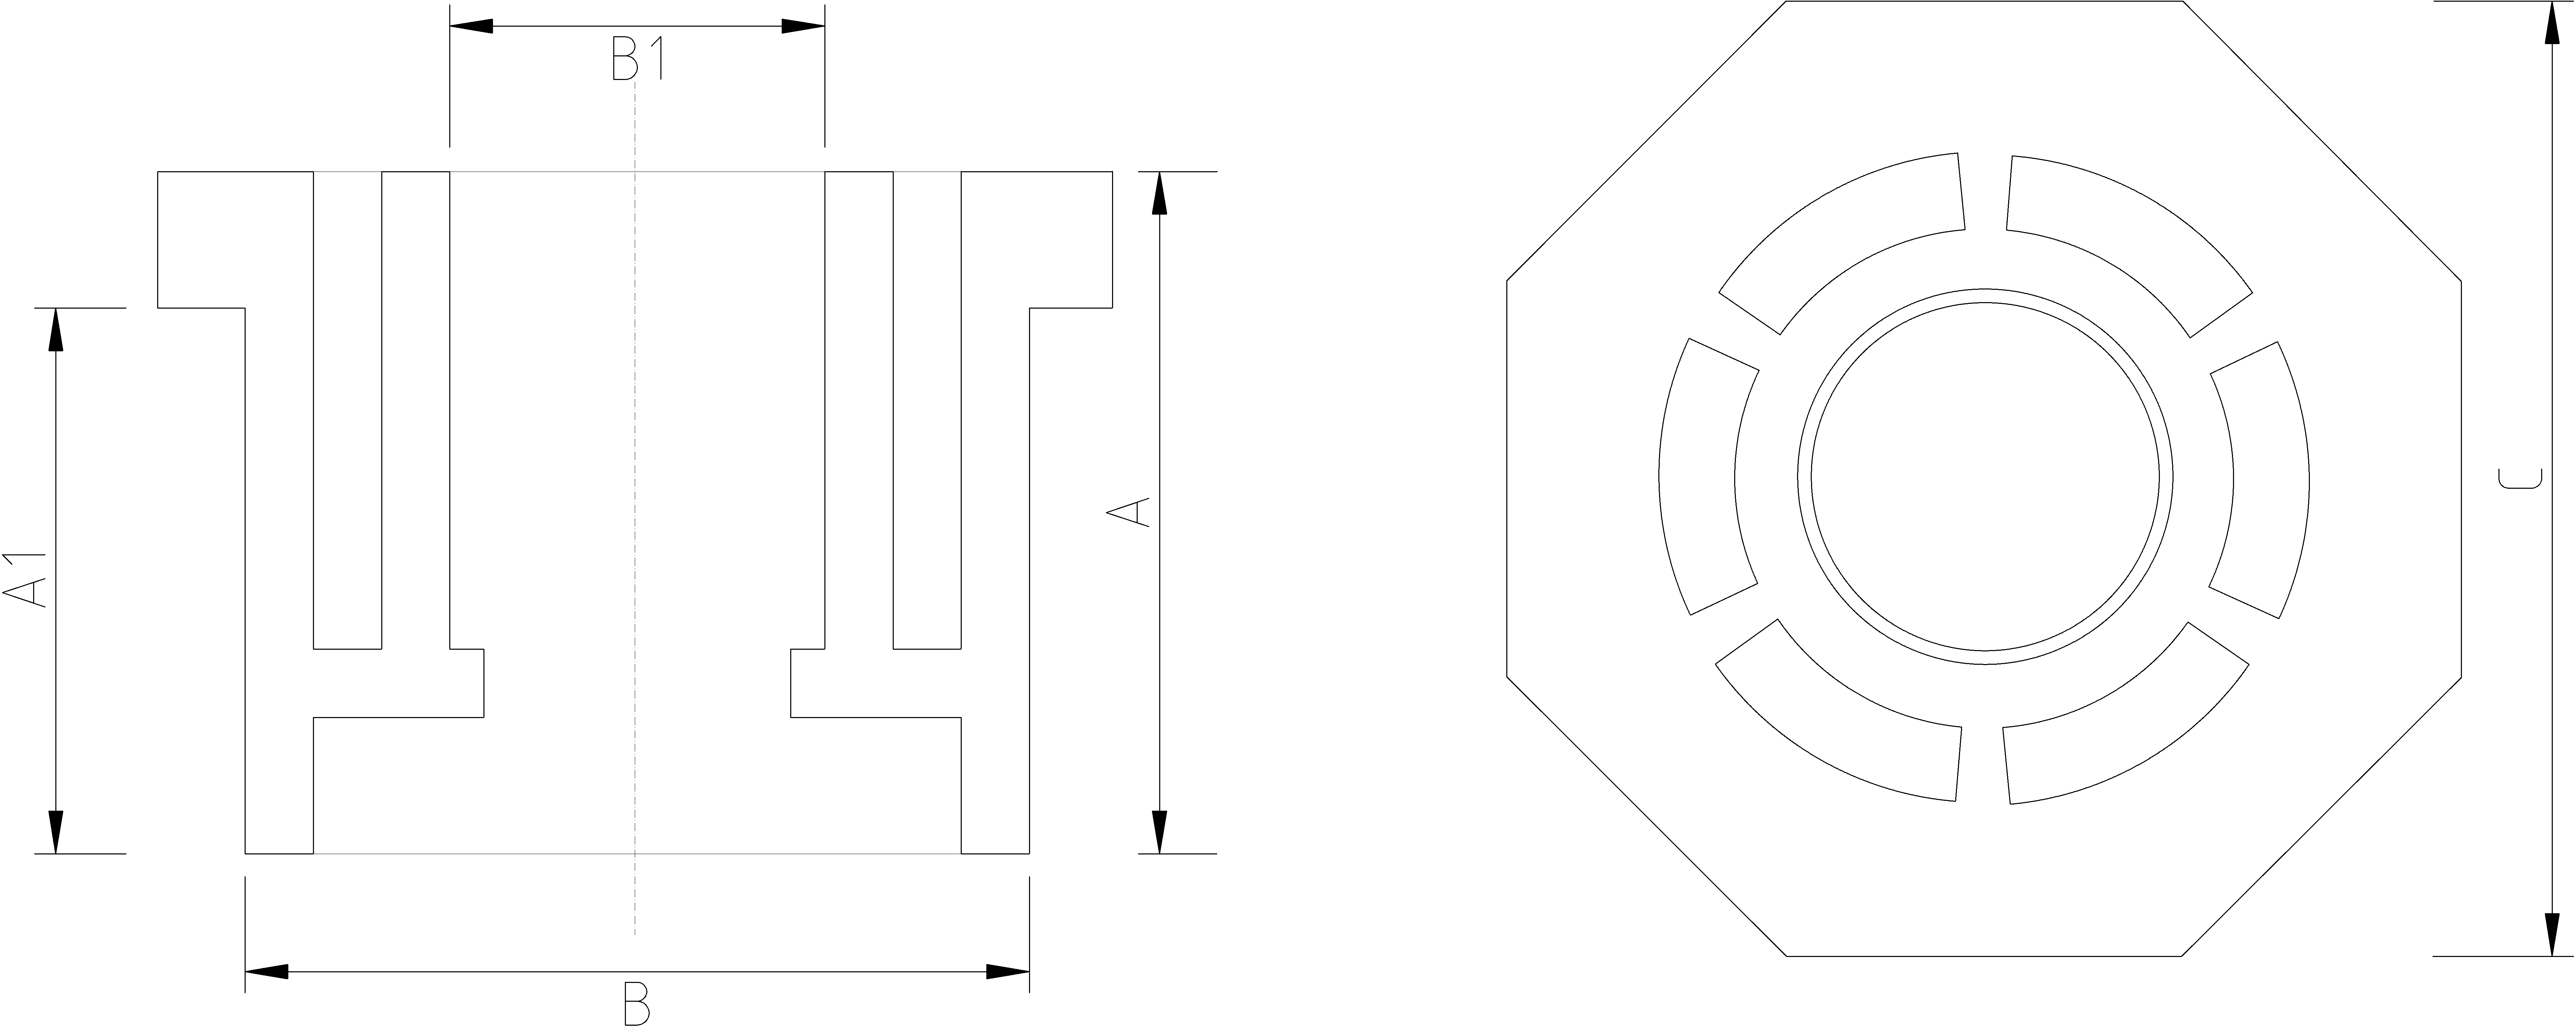 1 to 3/4 Inch Reducing Bush Dimensions Drawing